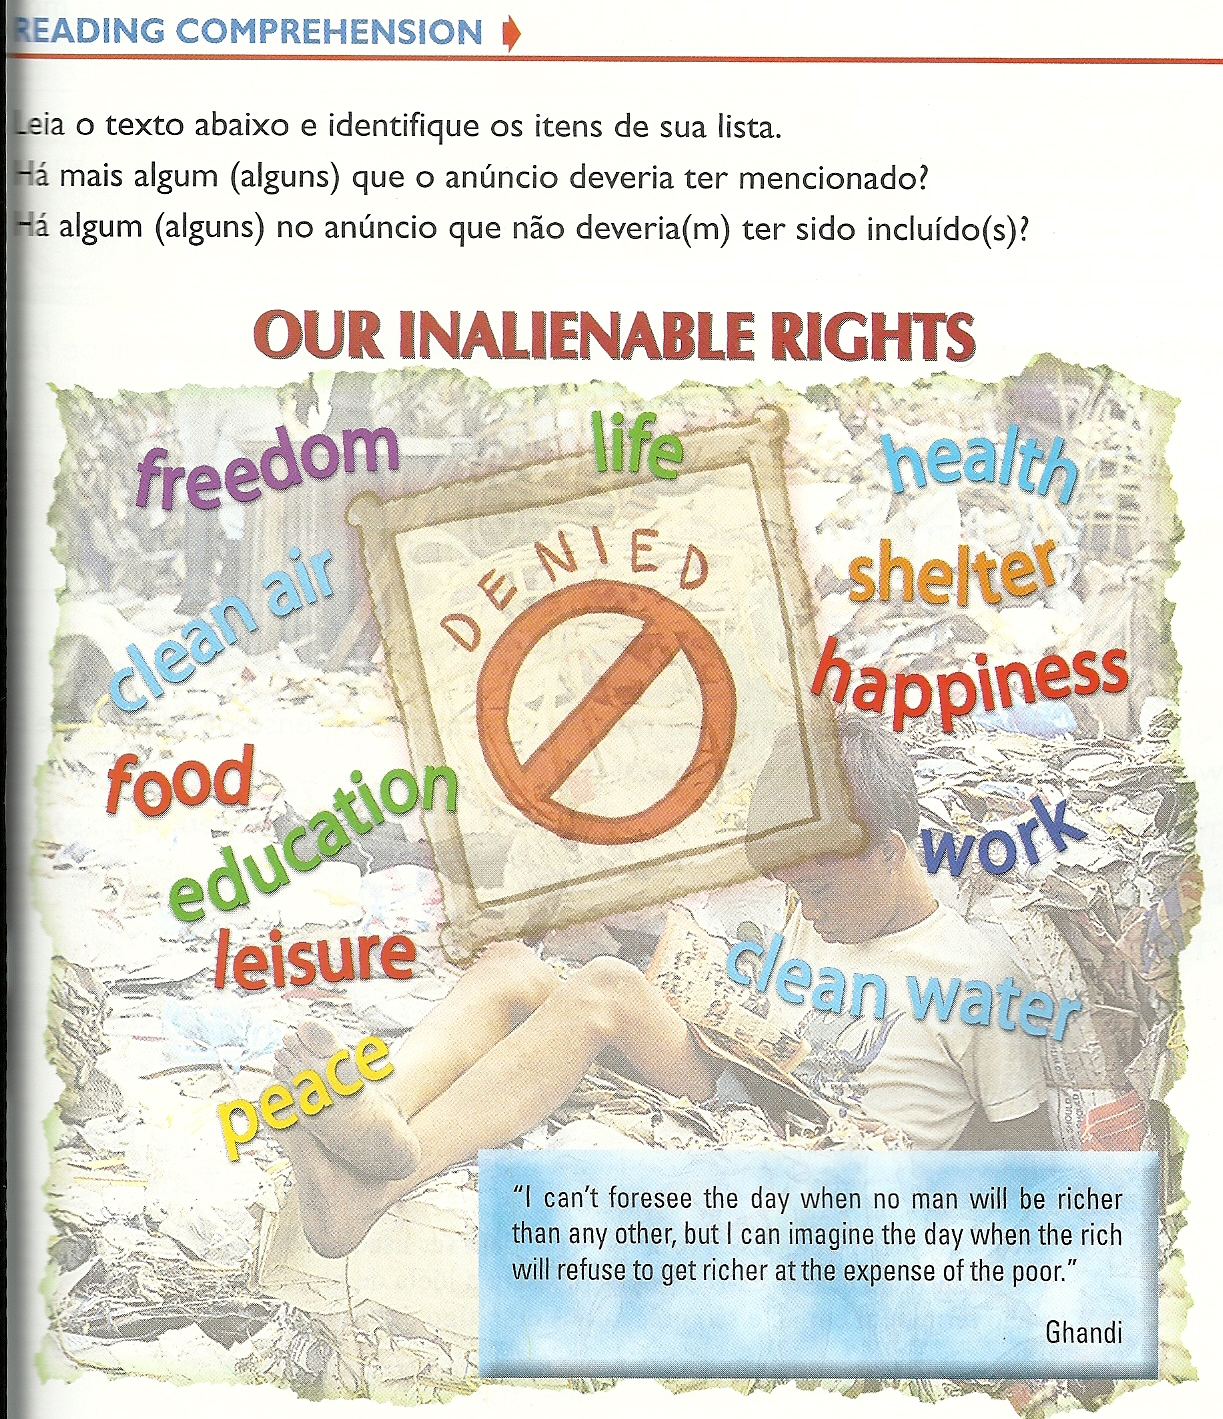 our inalienable rights These rights have been justly considered and frequently declared by the people of this country to be natural, inherent, and inalienable, and it may be stated as a legal axiom [a principle that is not disputed a maxim] that since the great laboring masses of our country have little or no property but their labor, and the free right to employ it .